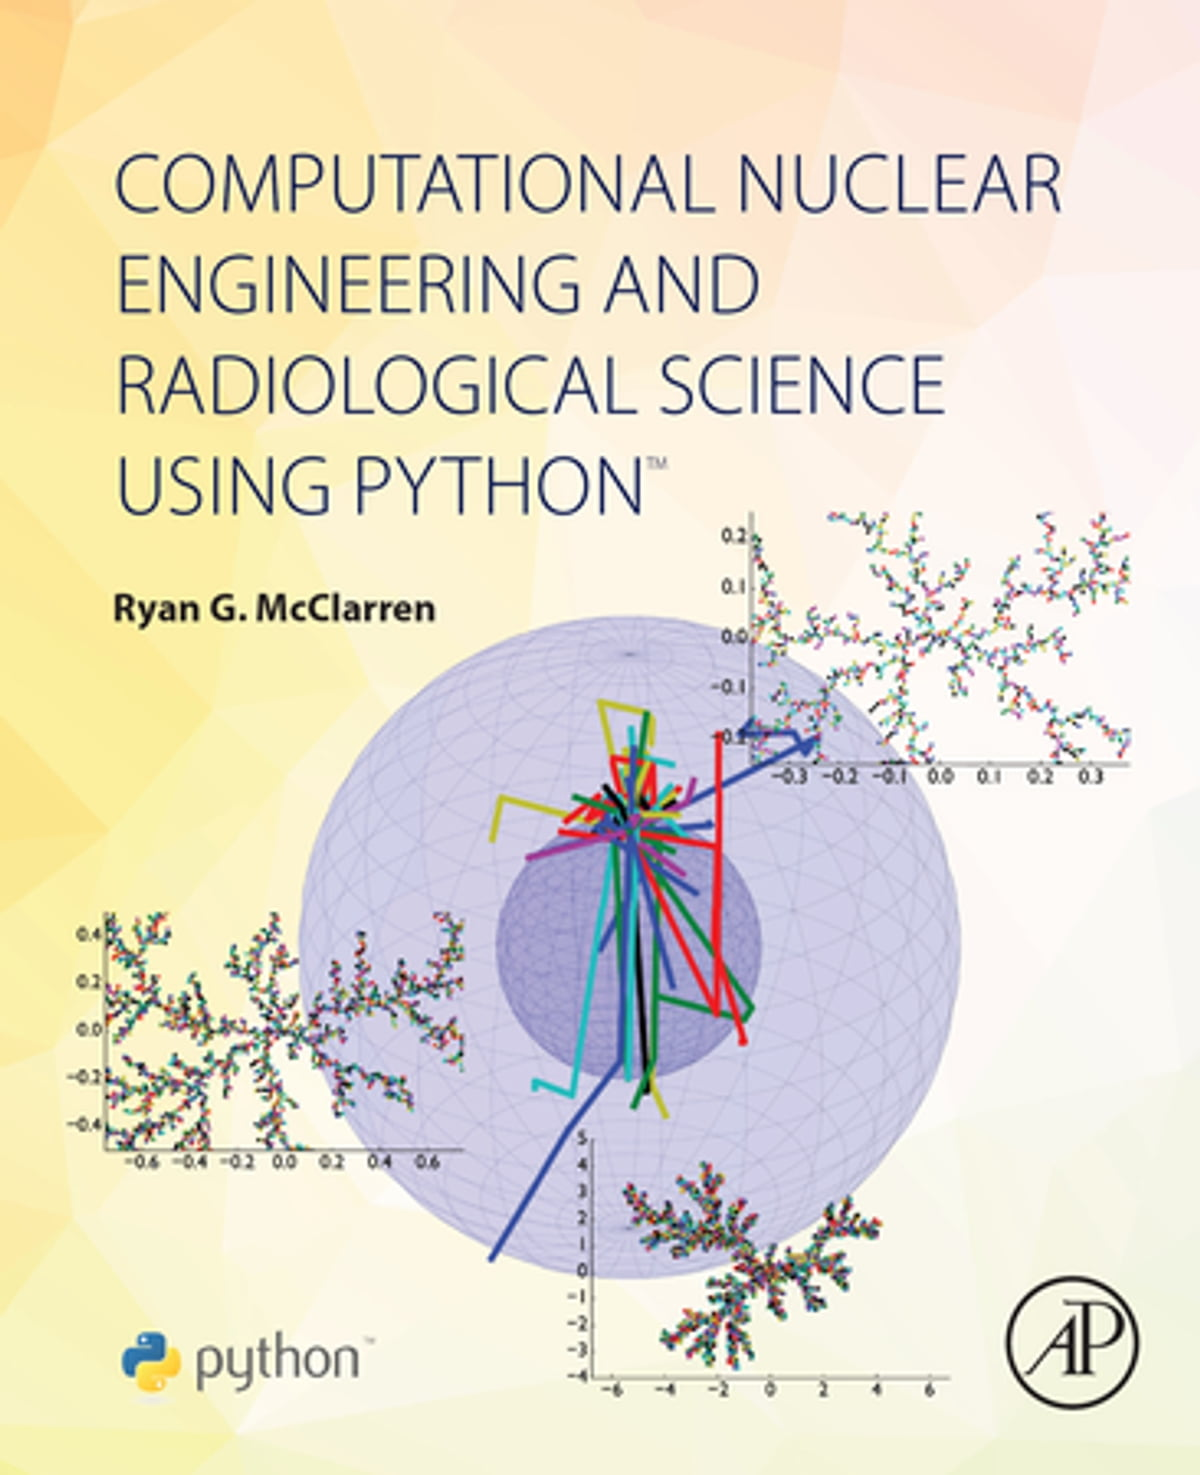 Computational Nuclear Engineering and Radiological Science Using Python  ebook by Ryan McClarren - Rakuten Kobo